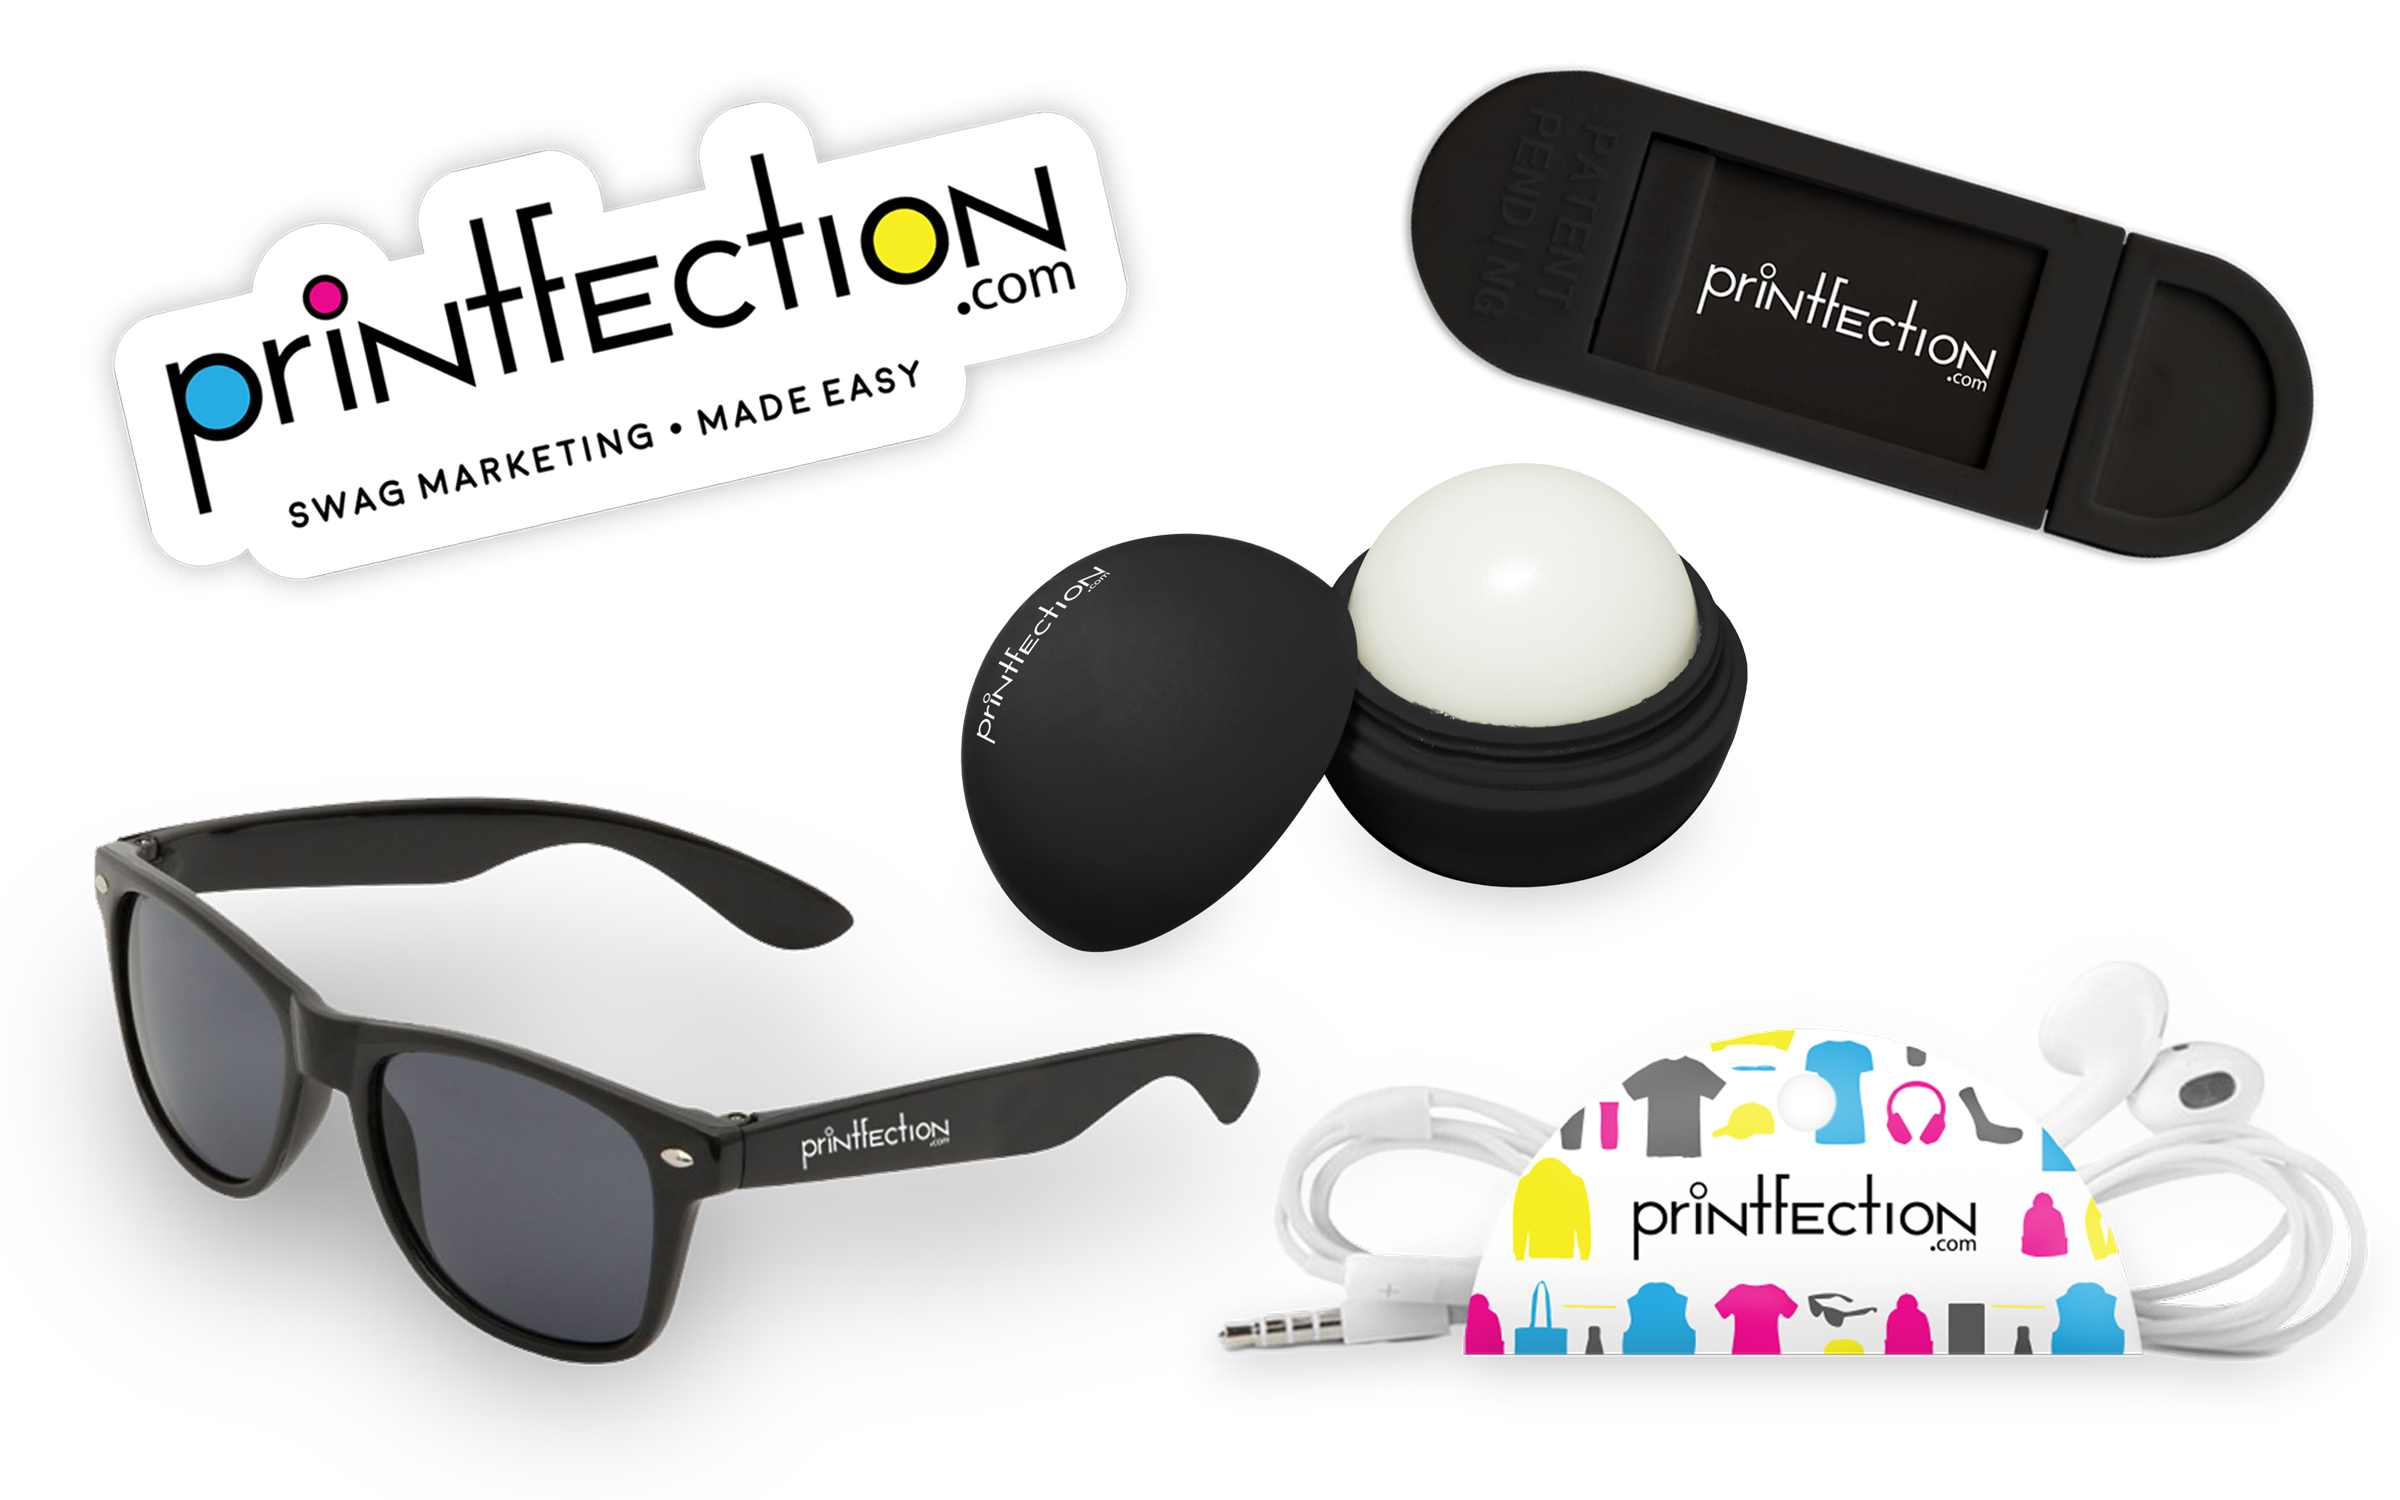 event swag under $5 - sunglasses, lip balm, stickers